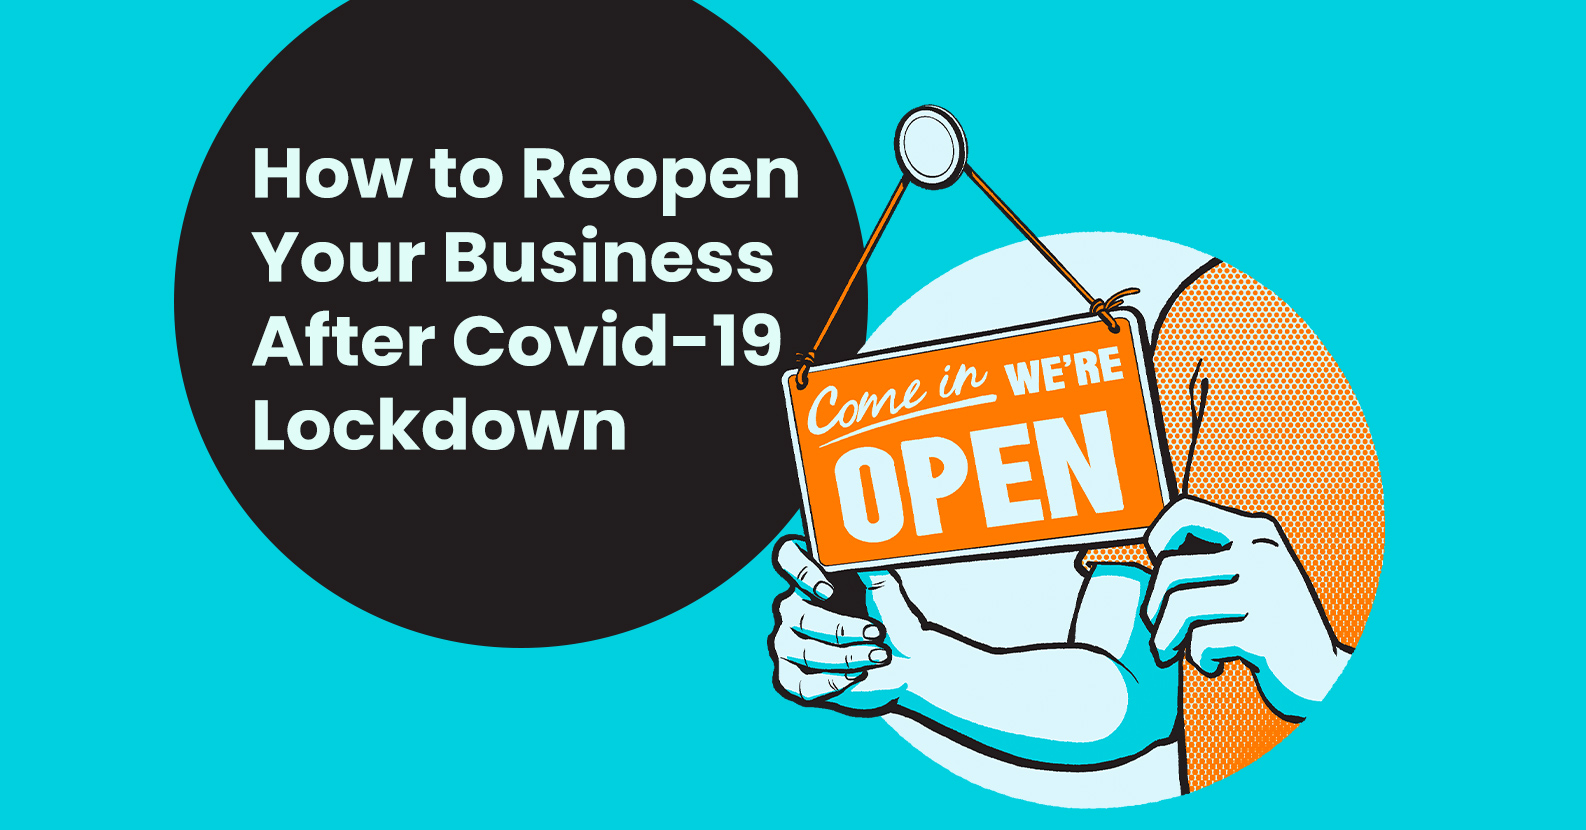 Phase Three Is Here: How to Reopen Your Business After Covid-19 Lockdown